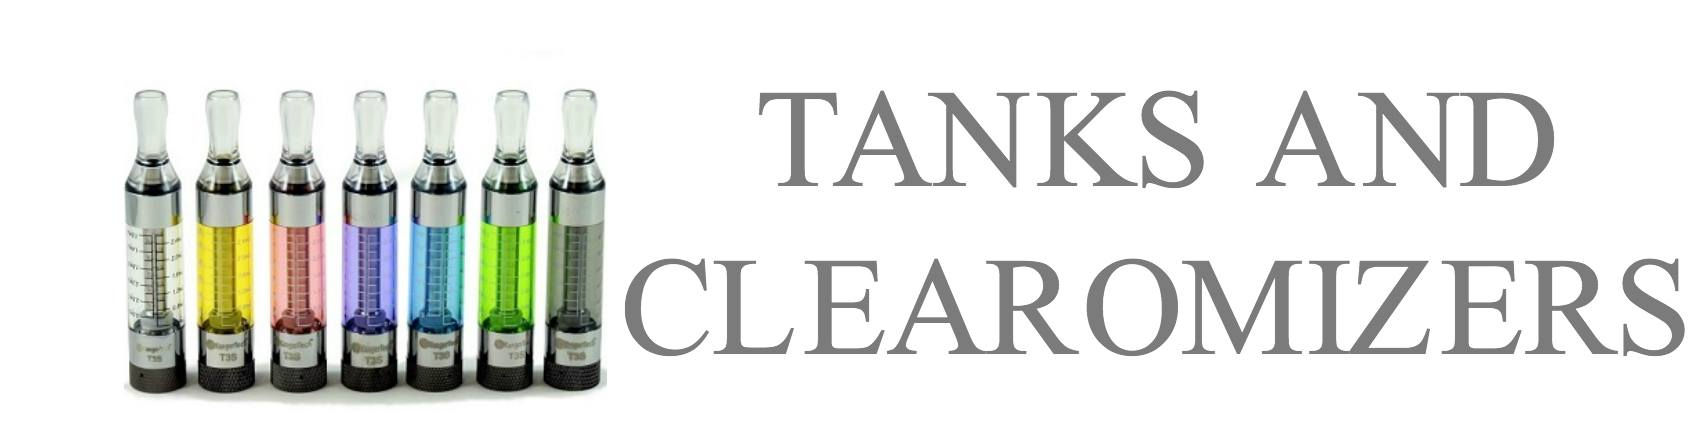 Clearmoizers and Ecig Vape Tanks